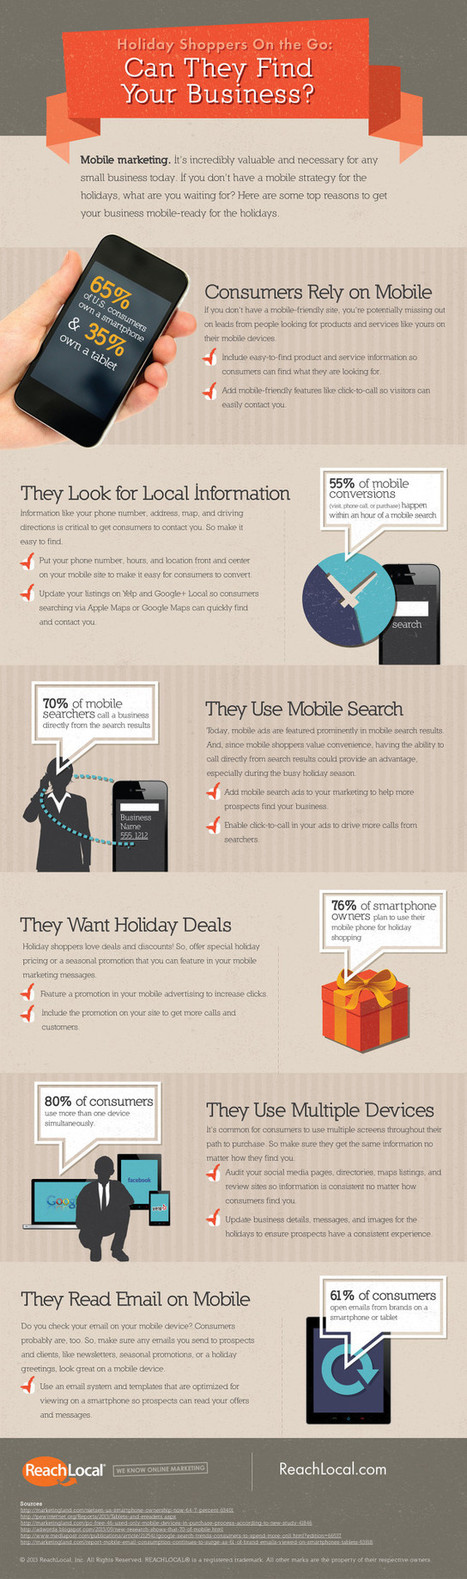 Infographic: Why Your Business Should be Mobile-Ready for the Holidays - Marketing Technology Blog | OIRMS Small Business Marketing | Scoop.it